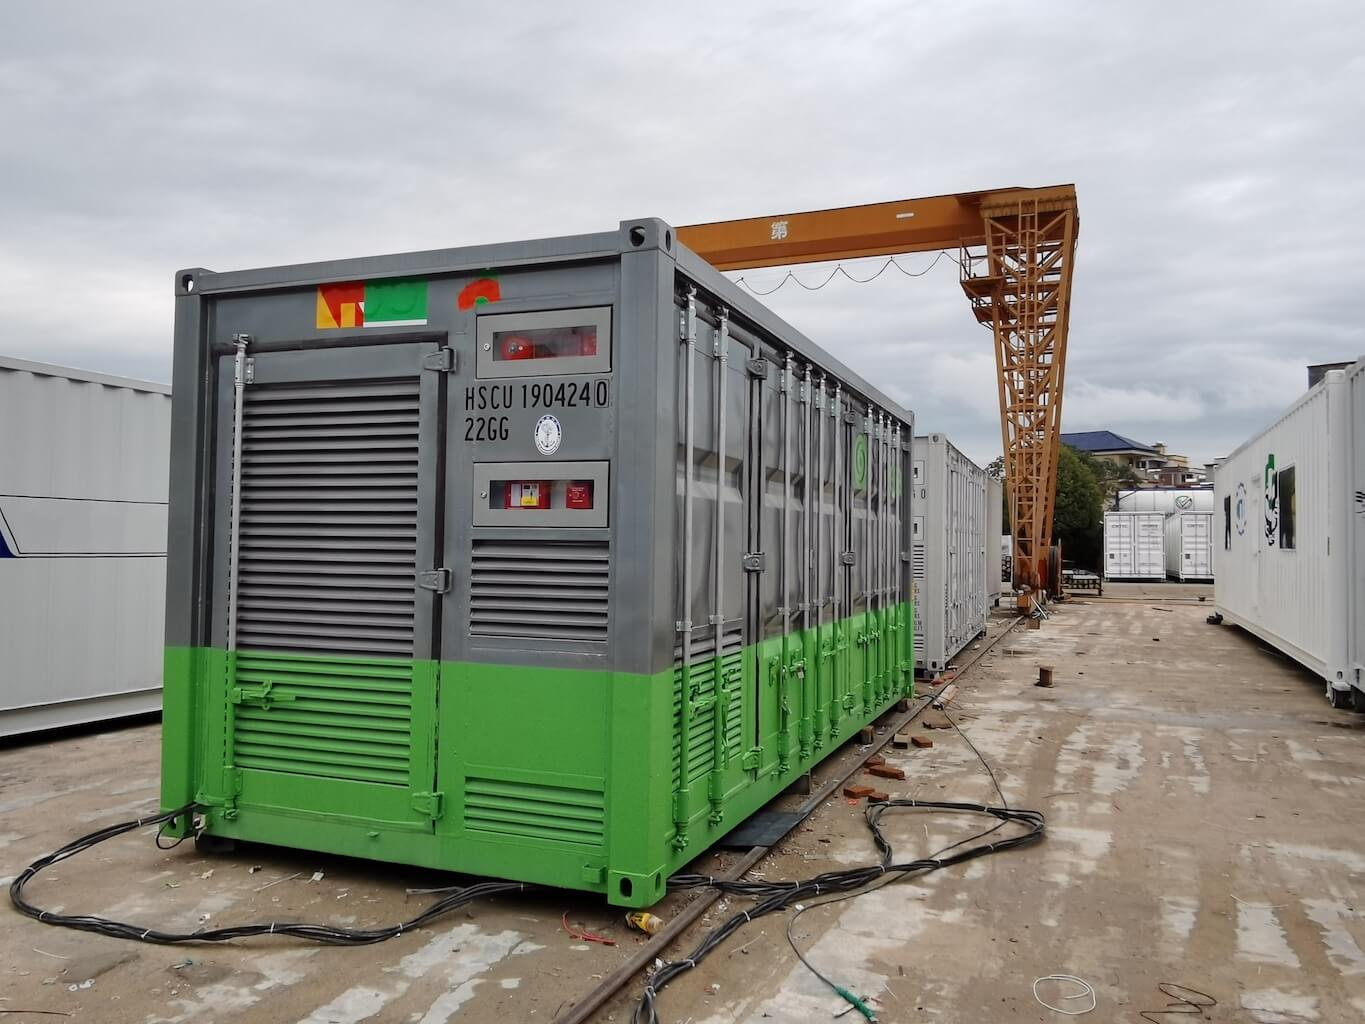 A TROESS BESS Container painted for a virtual power plant project